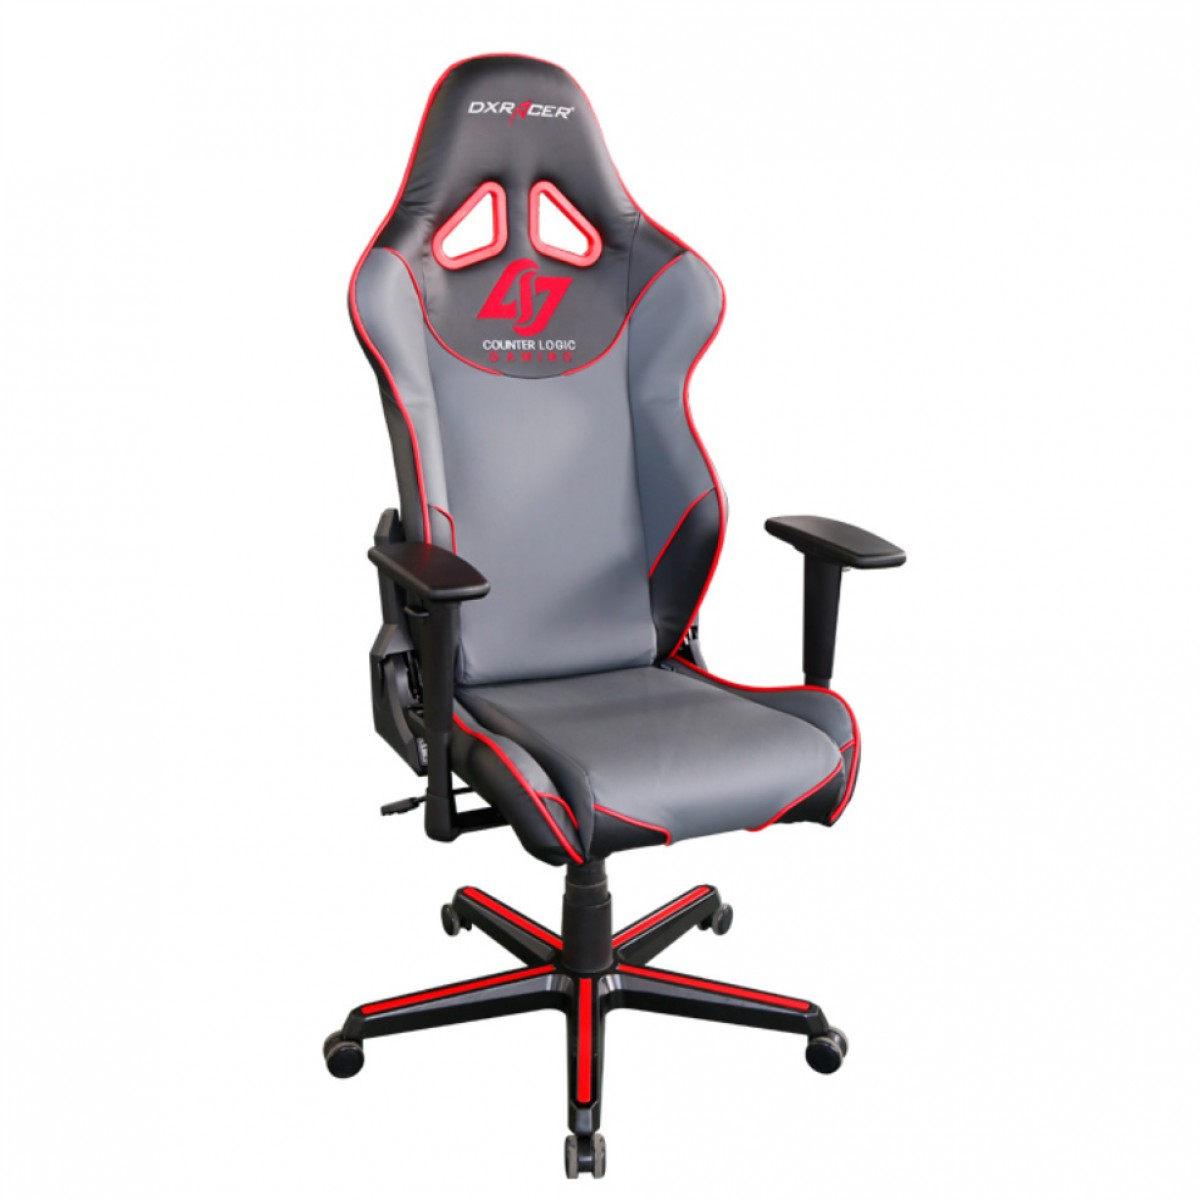 Dxr Racer Chair Dxracer Racing Counter Logic Edition Gaming Chair Taipei